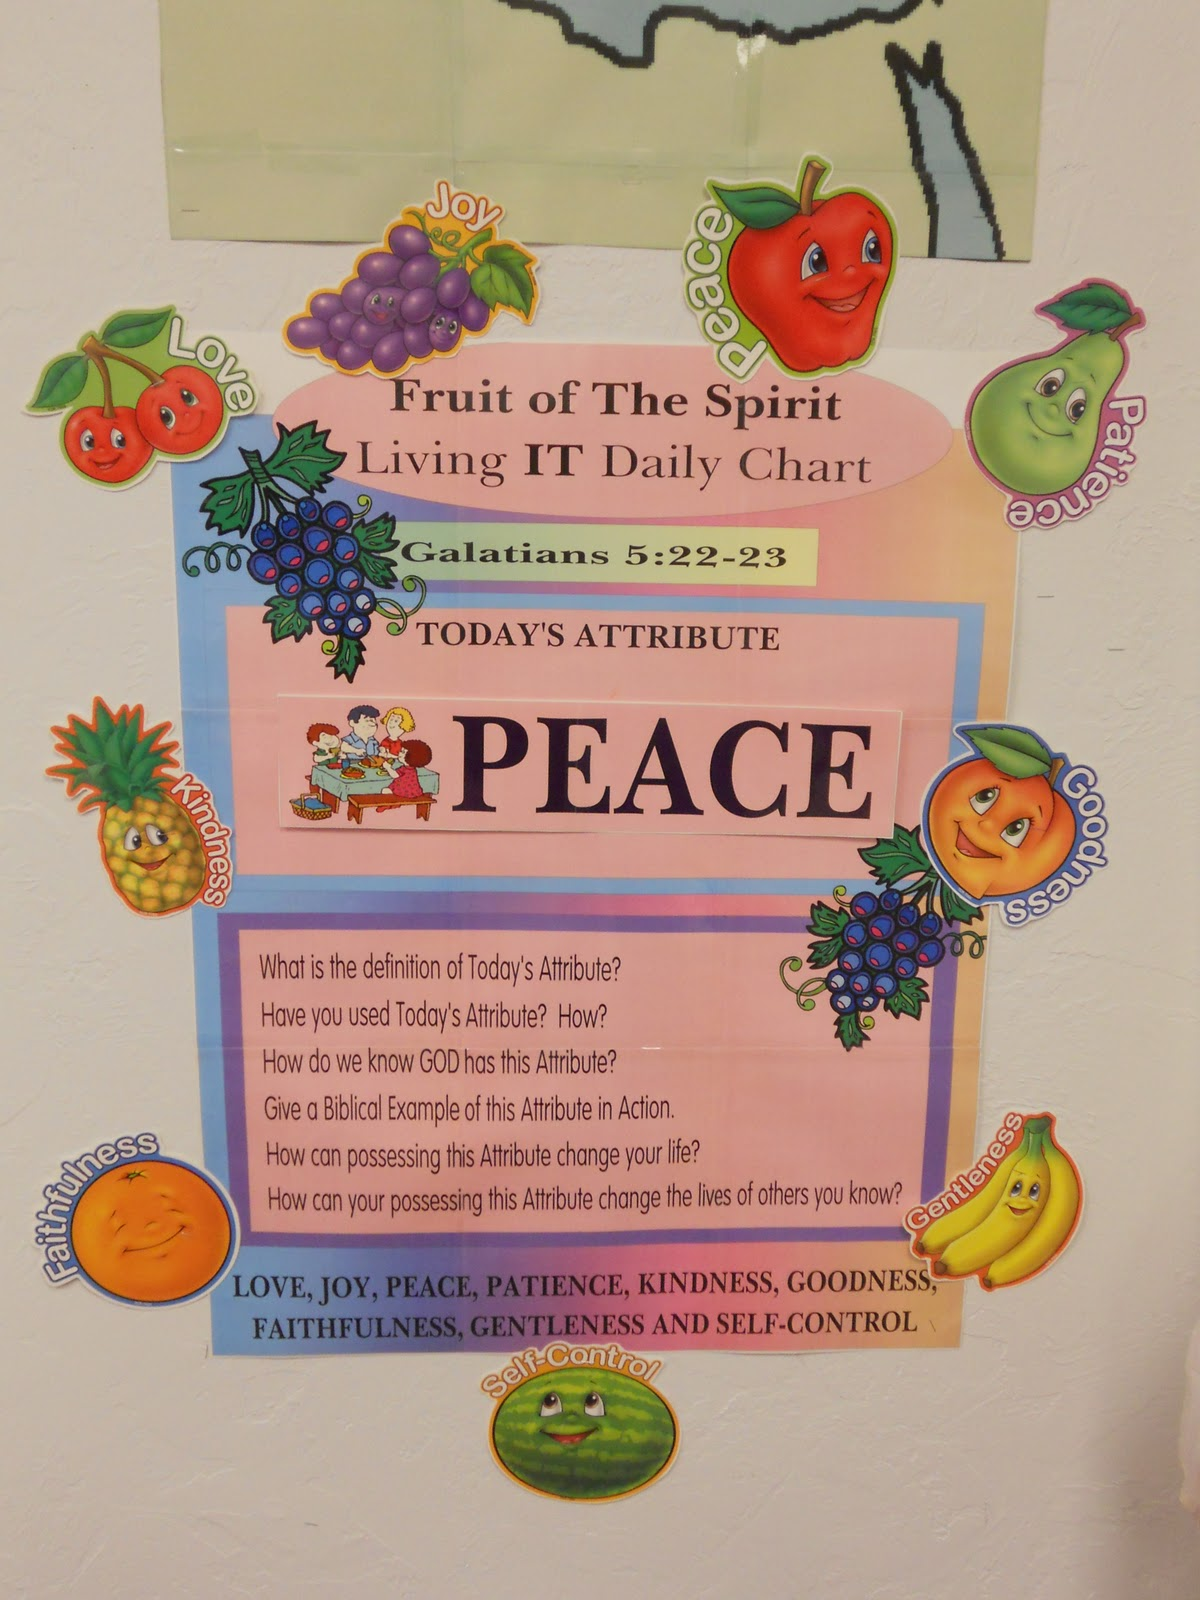 The Fruit of the Spirit - Peace: The Hunger of Human Hearts